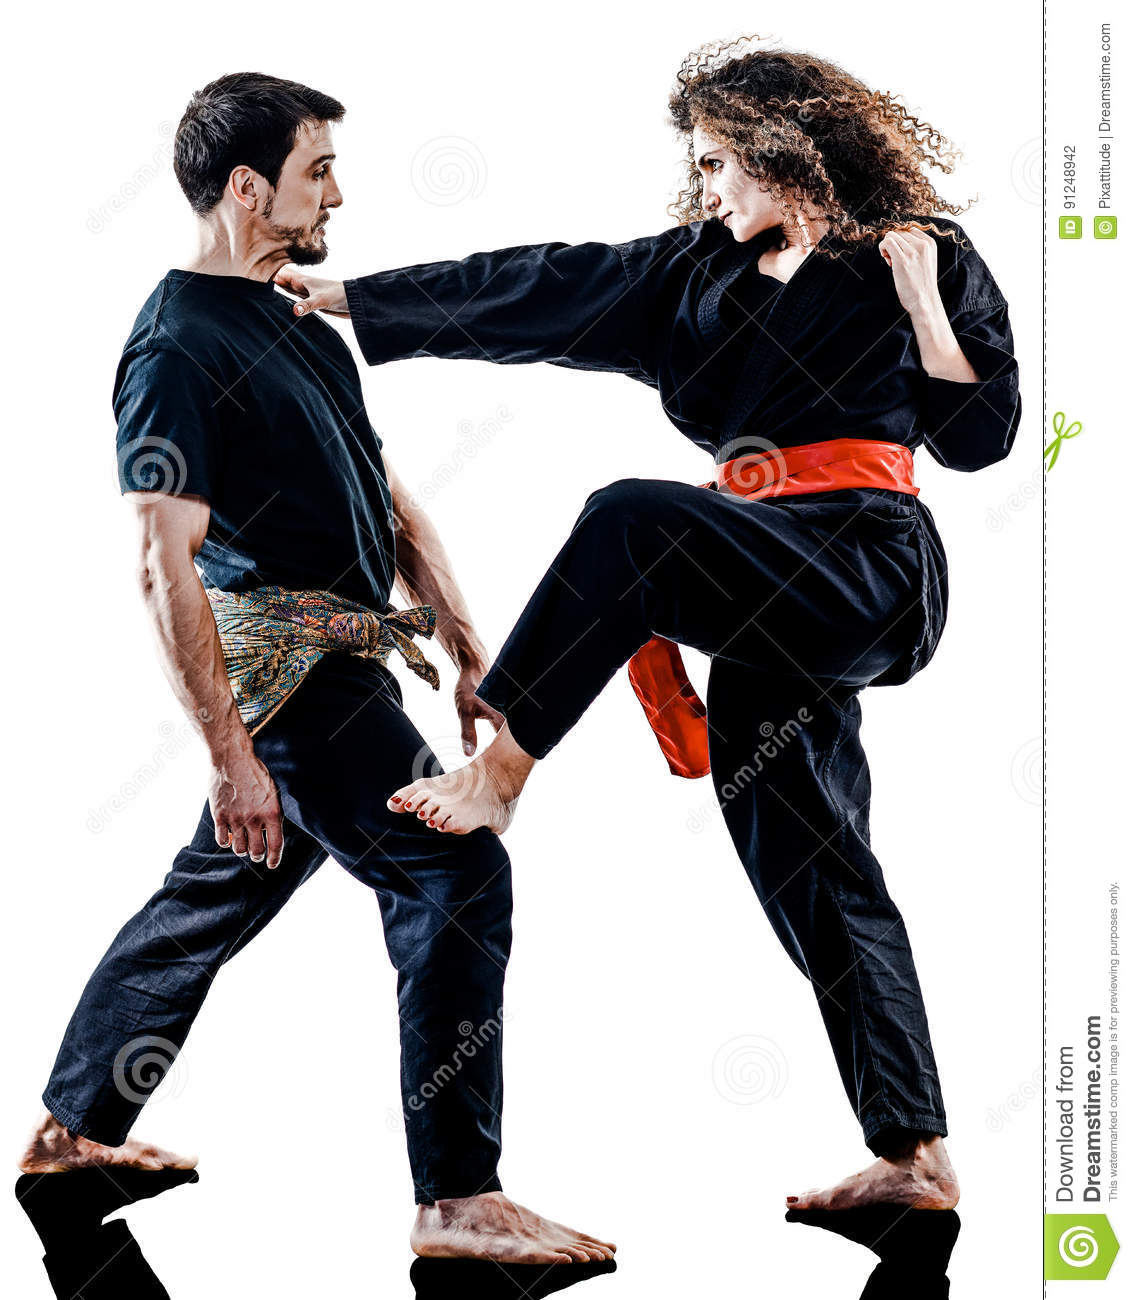 Woman Kung Fu Pencak Silat isolated